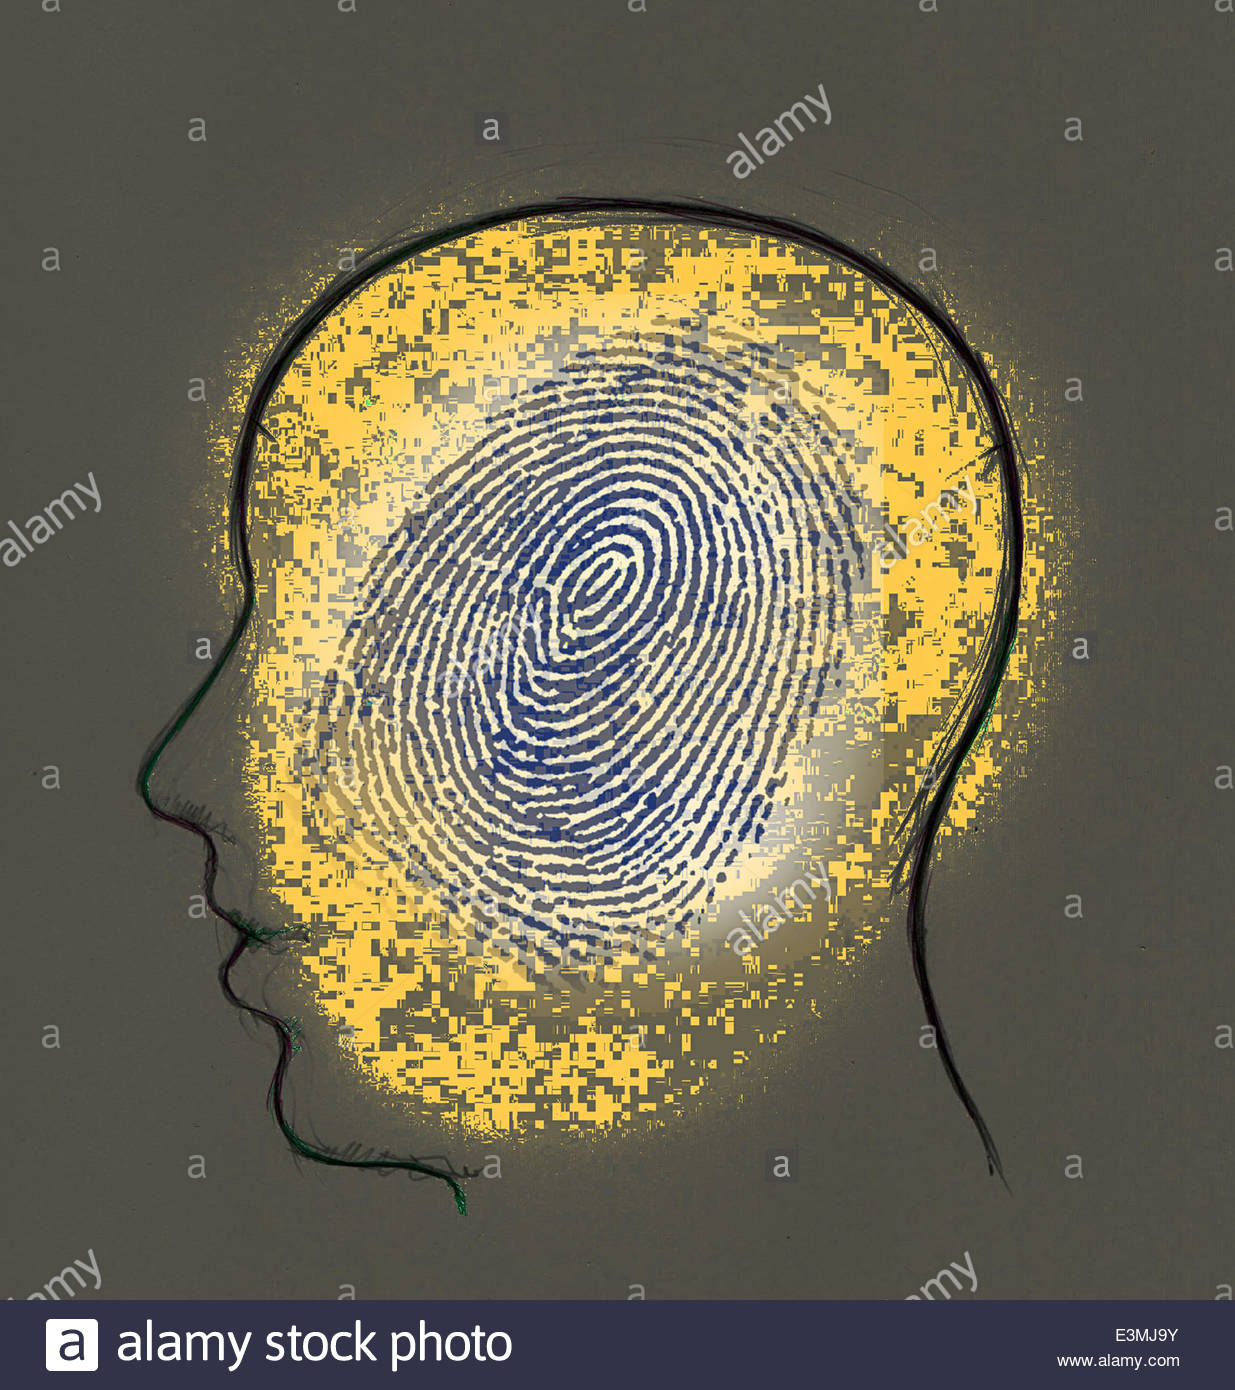 Fingerprint inside man's head - Stock Image